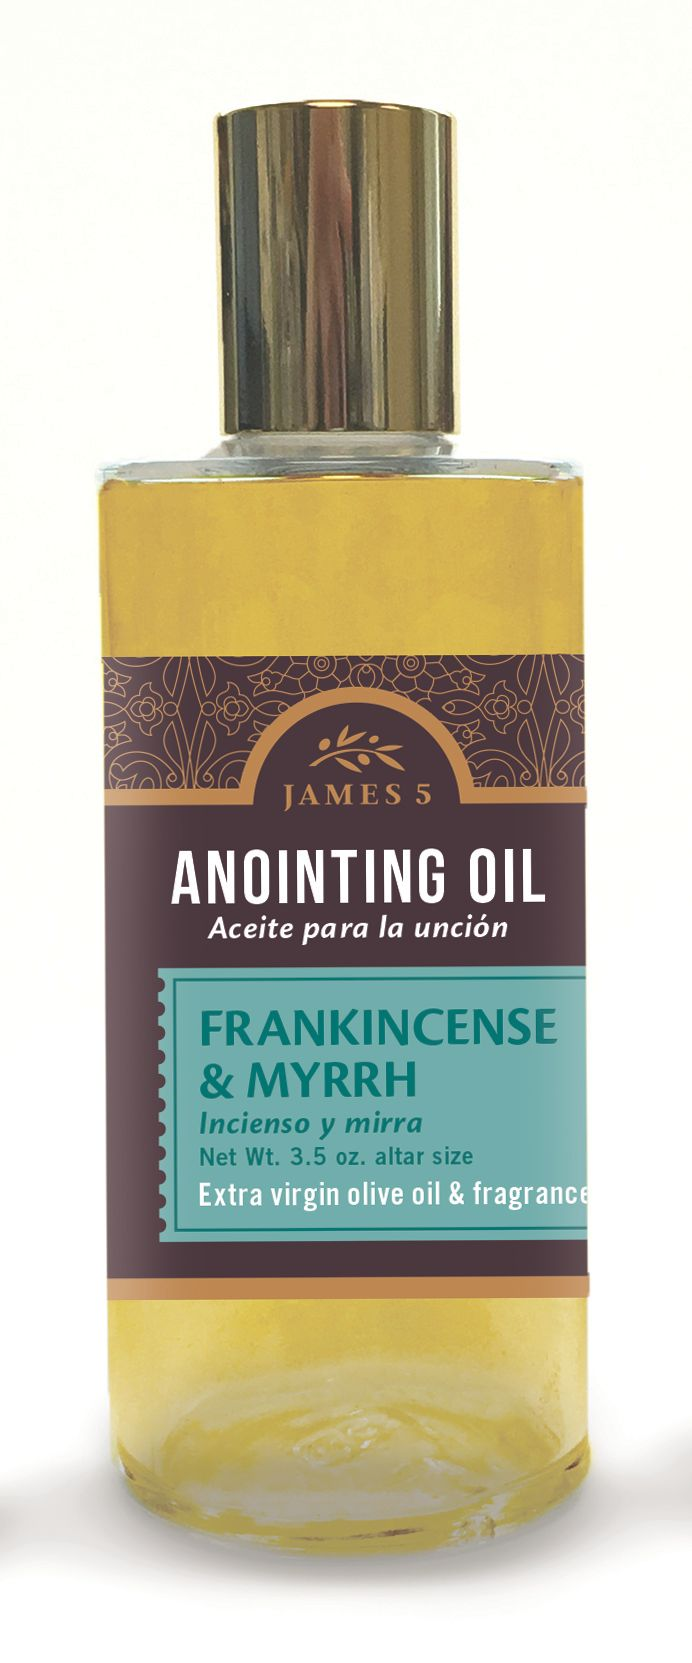 Anointing Oil – Frankincense and Myrrh (3.5 oz) Altar Size